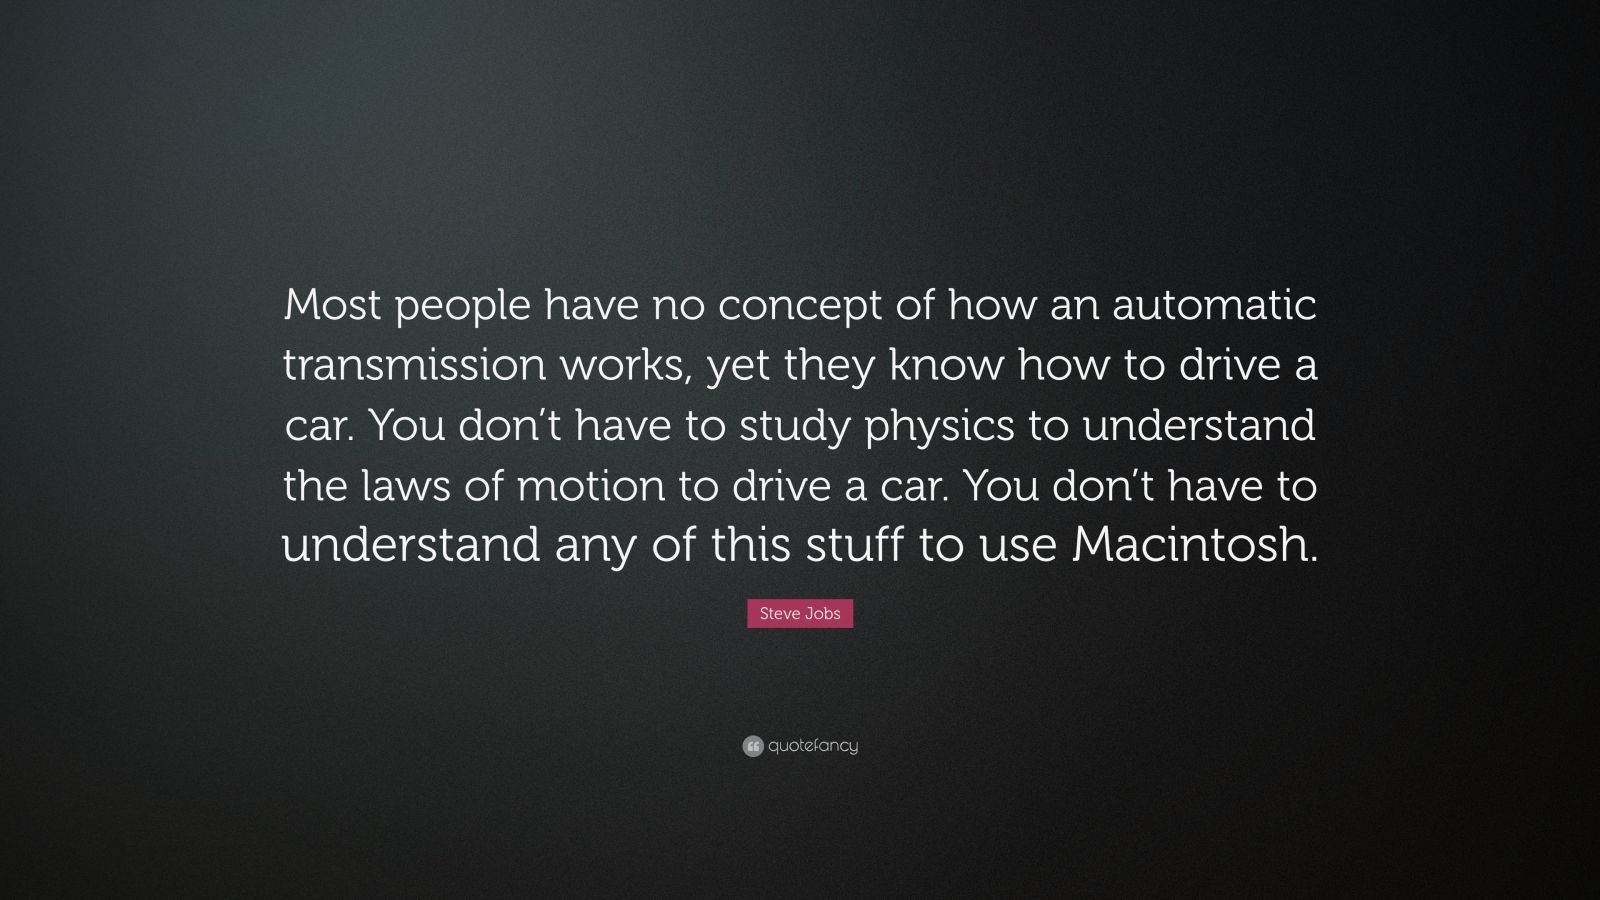 "Steve Jobs Quote: ""Most people have no concept of how an automatic transmission works, yet they know how to drive a car. You don't have to study physics to understand the laws of motion to drive a car. You don't have to understand any of this stuff to use Macintosh."""